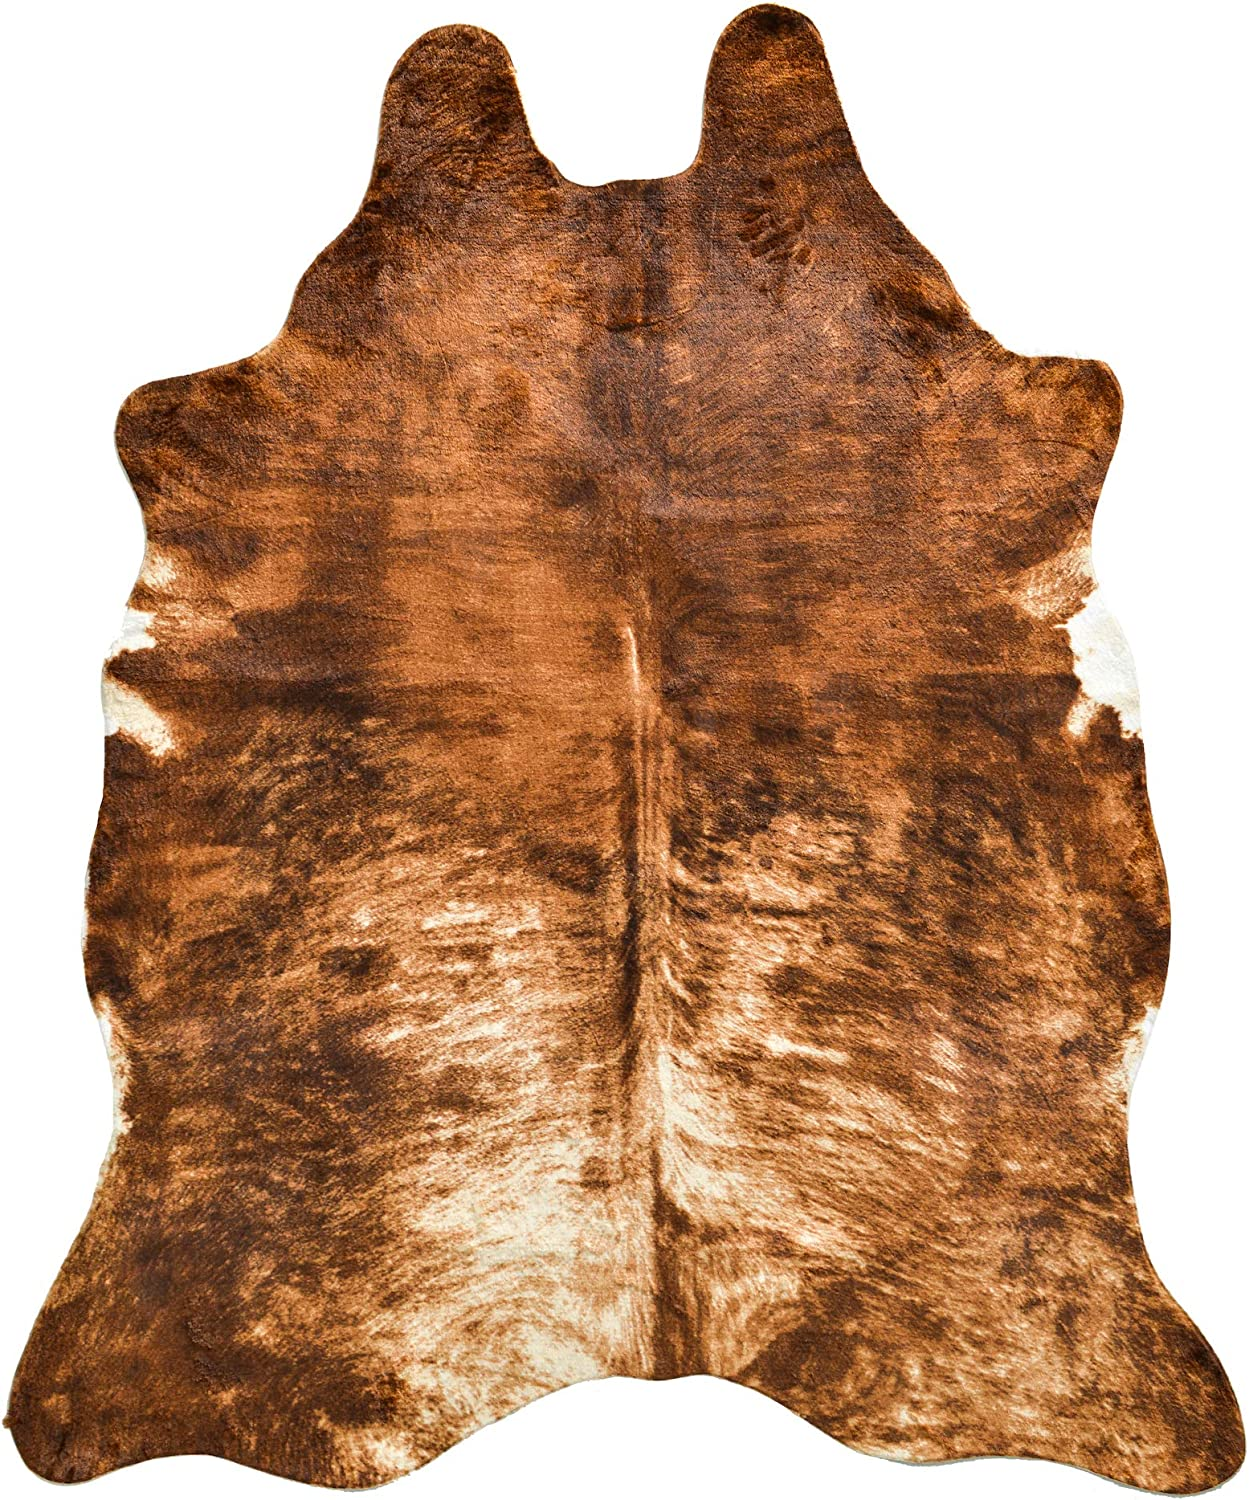 NativeSkins Large Faux Cowhide Rug - Sahara Sands (4.6ft x 6.6ft) - Cow Print Area Rug for a Western Boho Decor - Synthetic, Cruelty-Free Animal Hide Carpet with No-Slip Backing